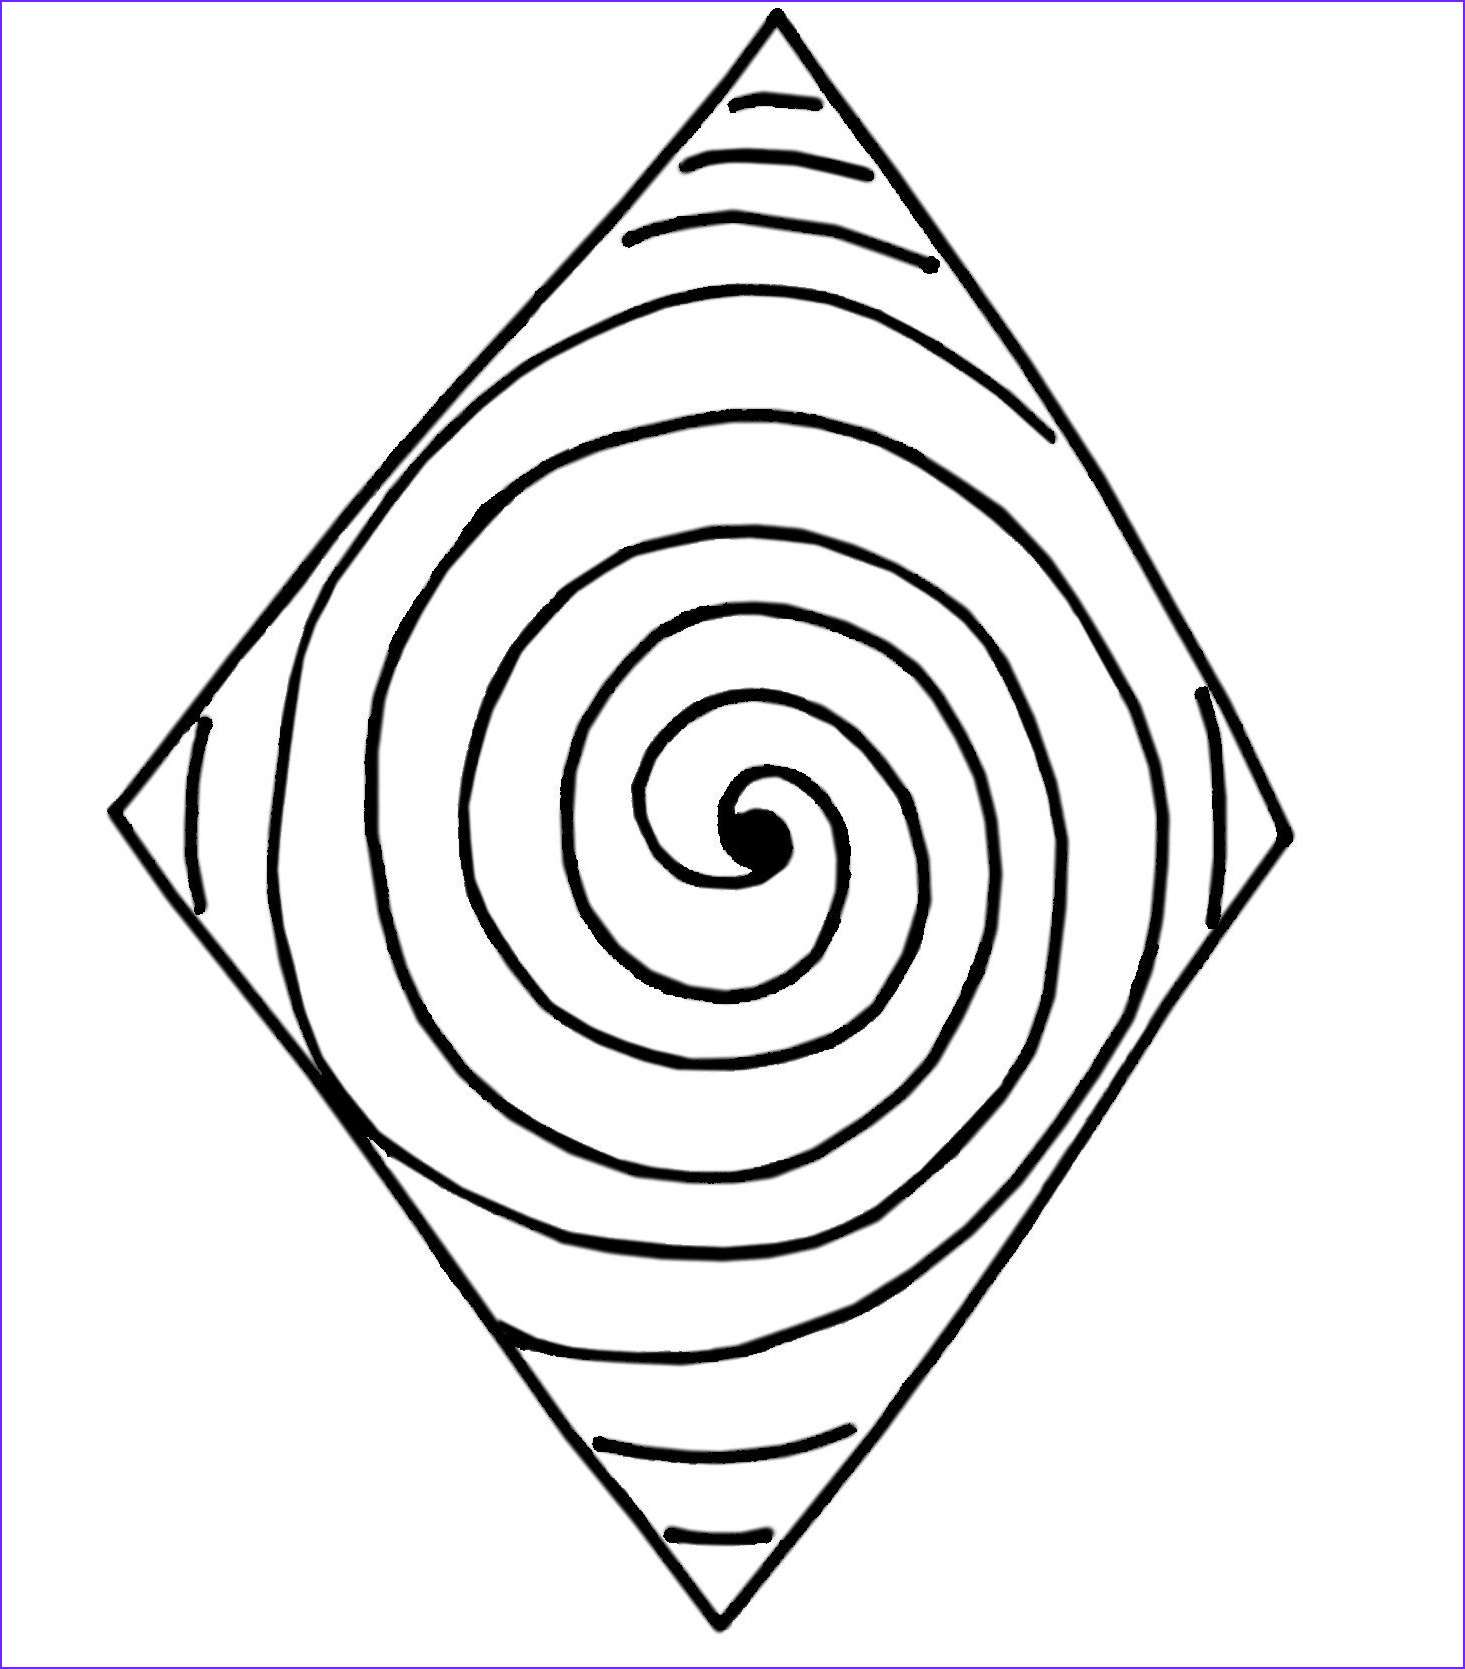 Swirls Coloring Page Best Of Photography Coloring Page Diamond Swirl By Blackcatstitchcrafts On